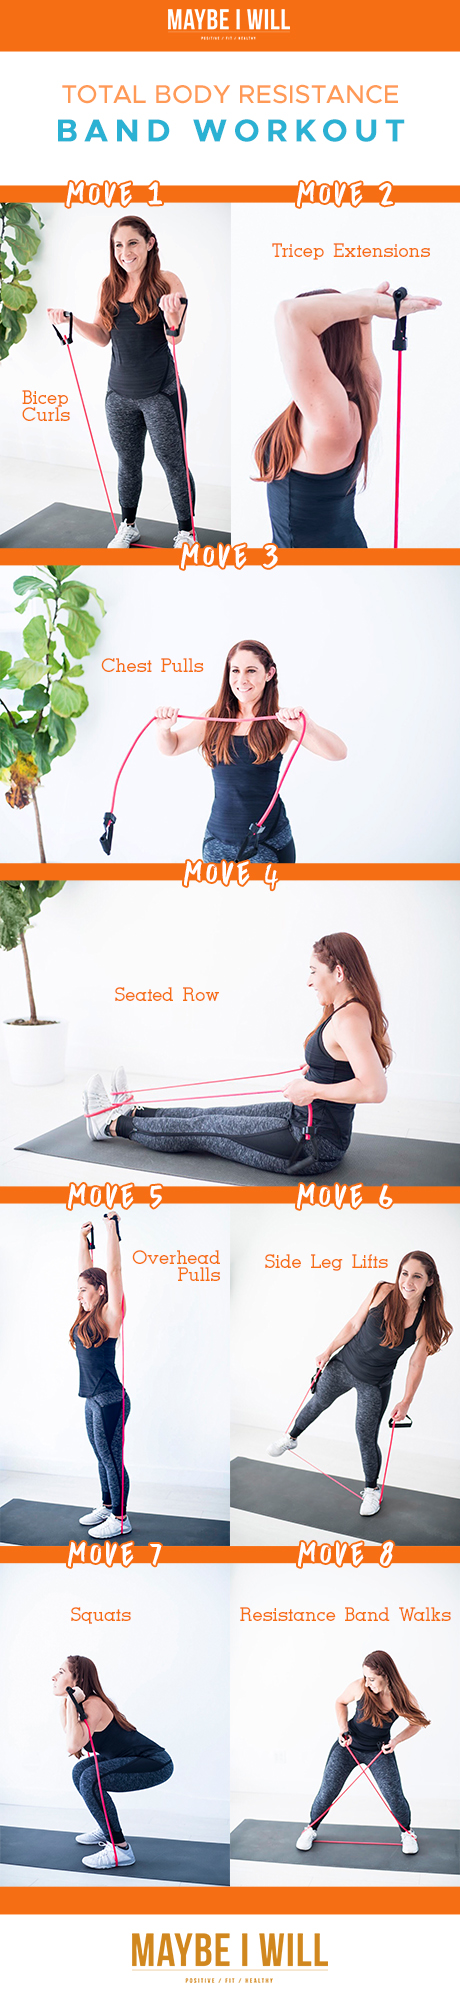 Total Body Workout With Bands on the Ball recommendations